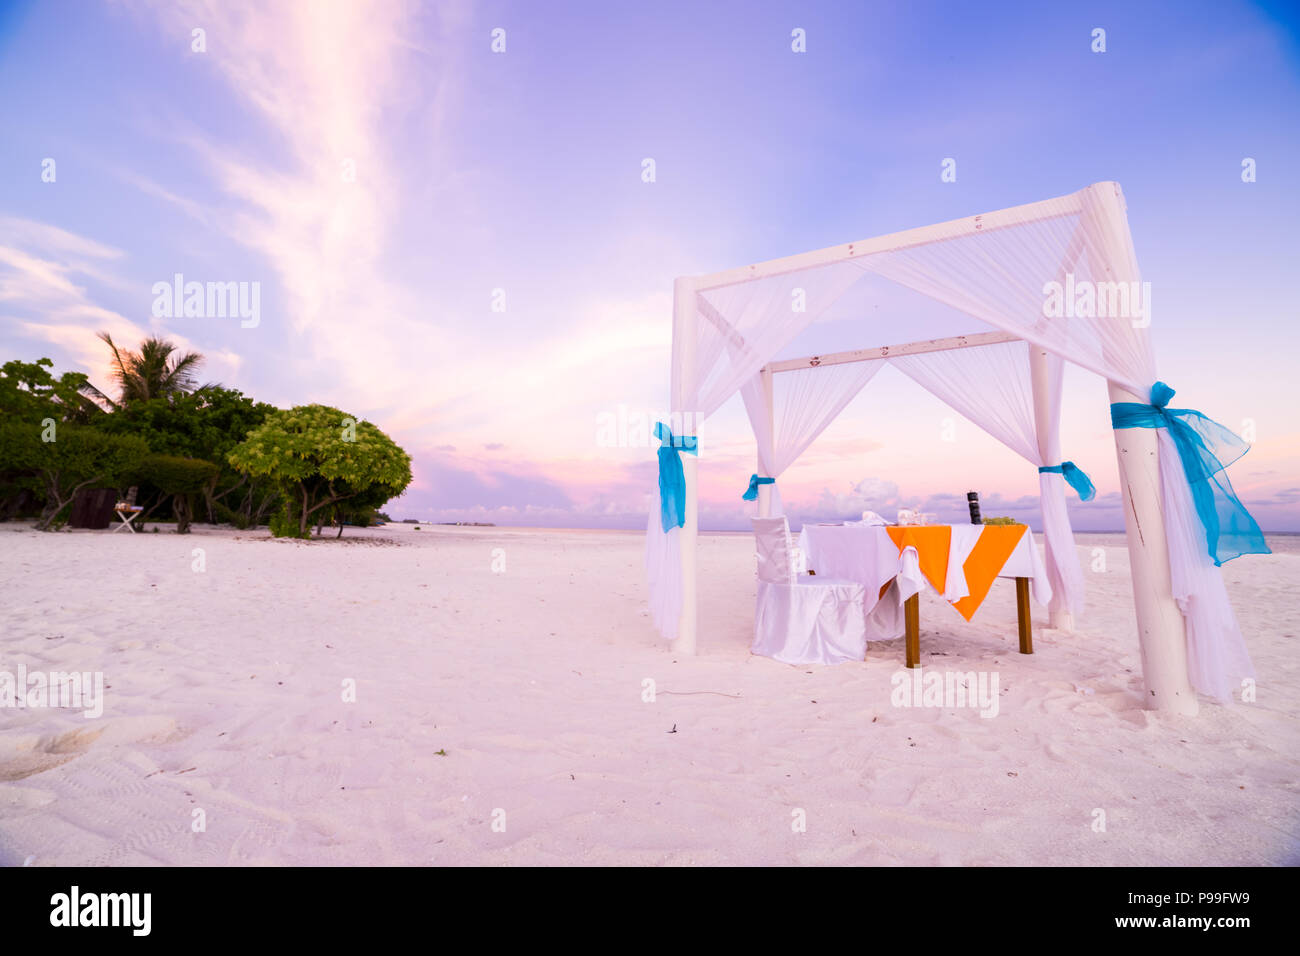 Beach Wedding Setup Stock Photos & Beach Wedding Setup Stock Images ...